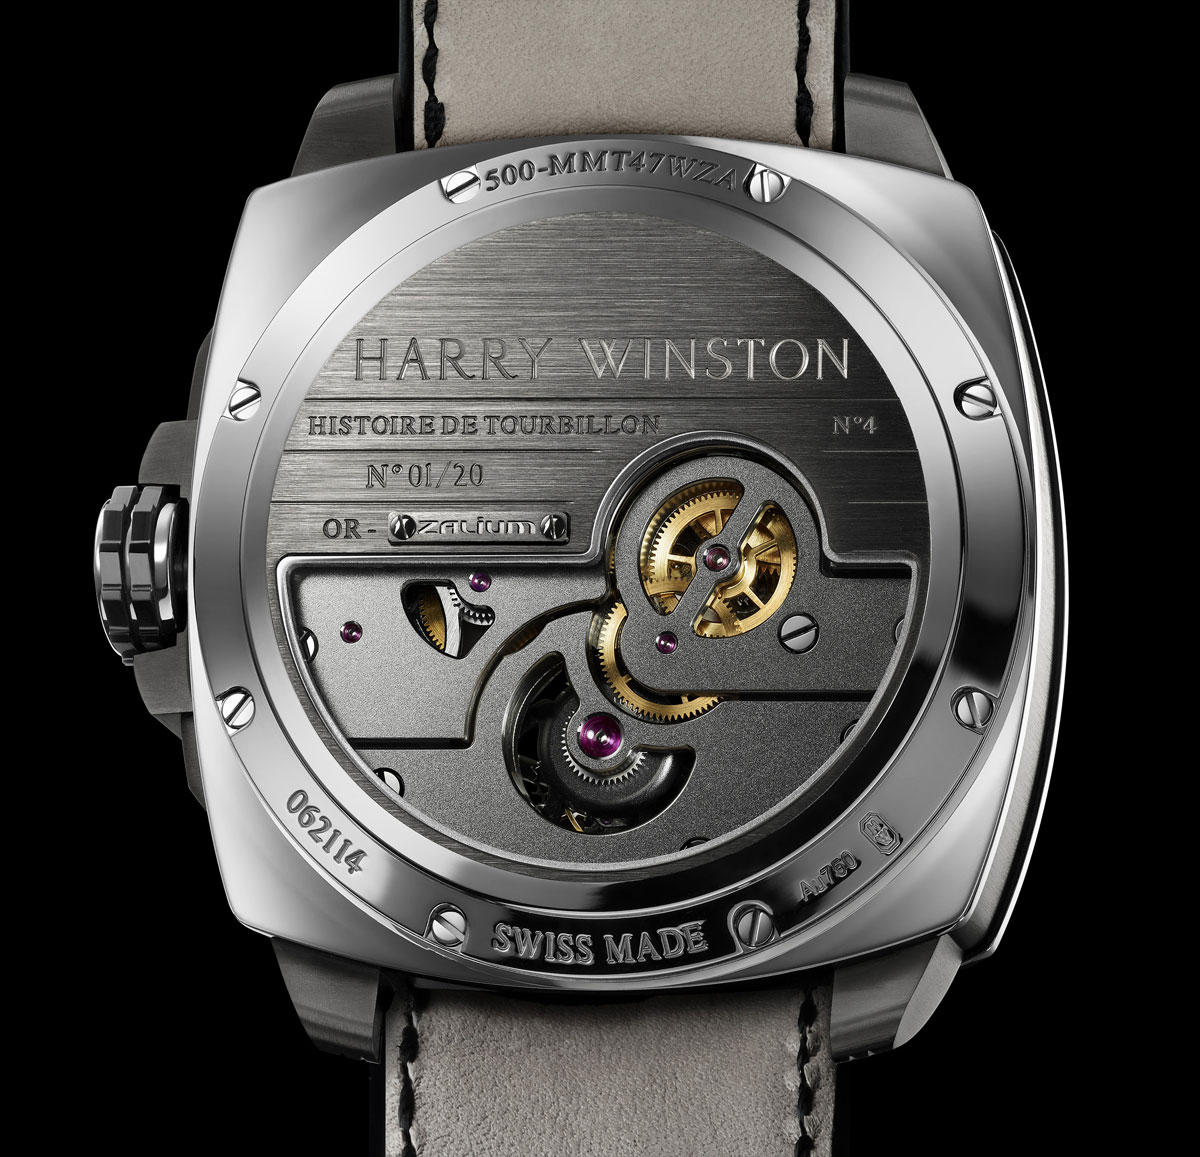 New Harry Winston Histoire de Tourbillon 4 Watch &#8211; Limited to 20 Pieces